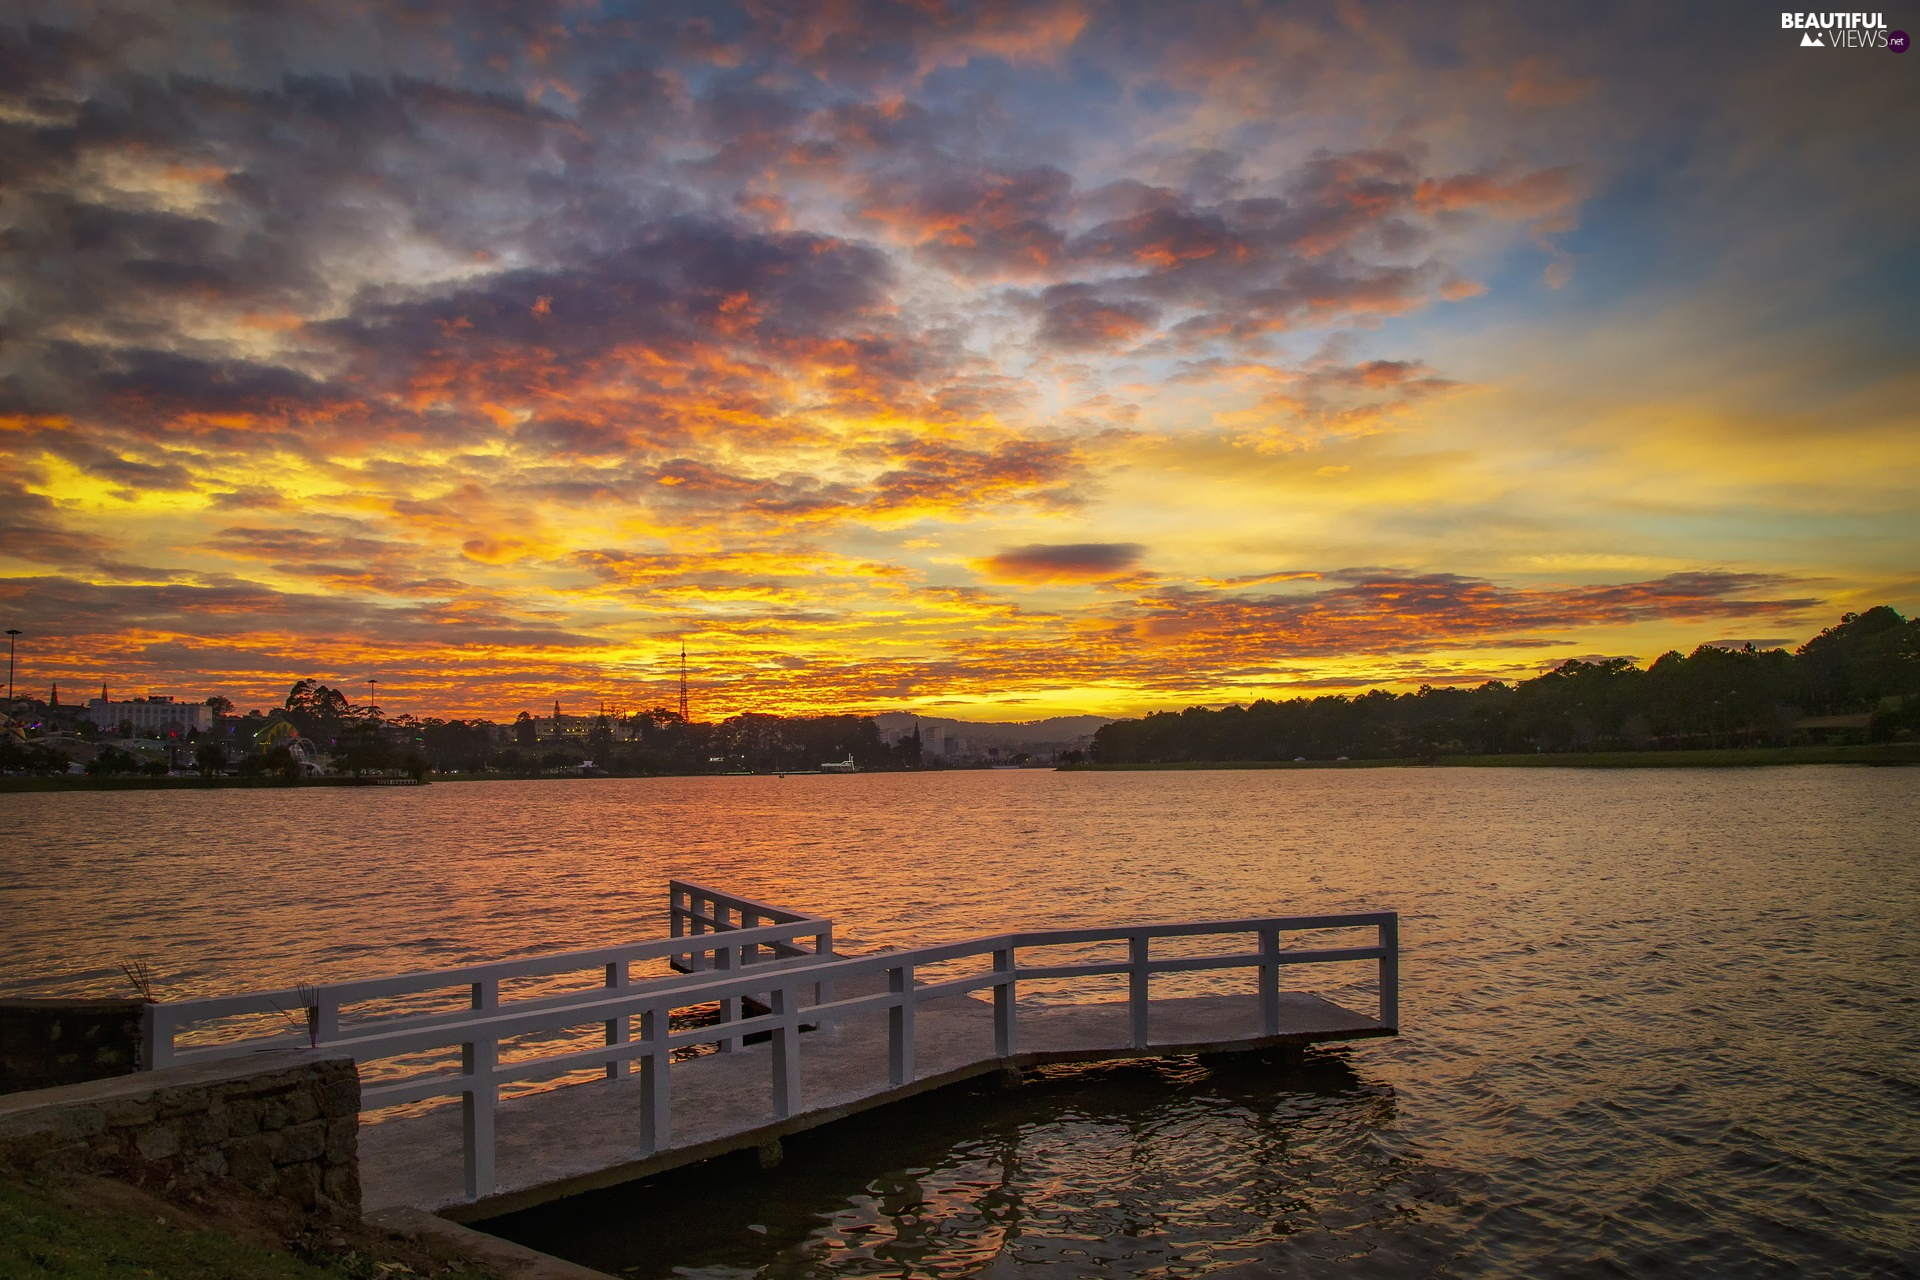 clouds, lake, viewes, Great Sunsets, Platform, trees, Town